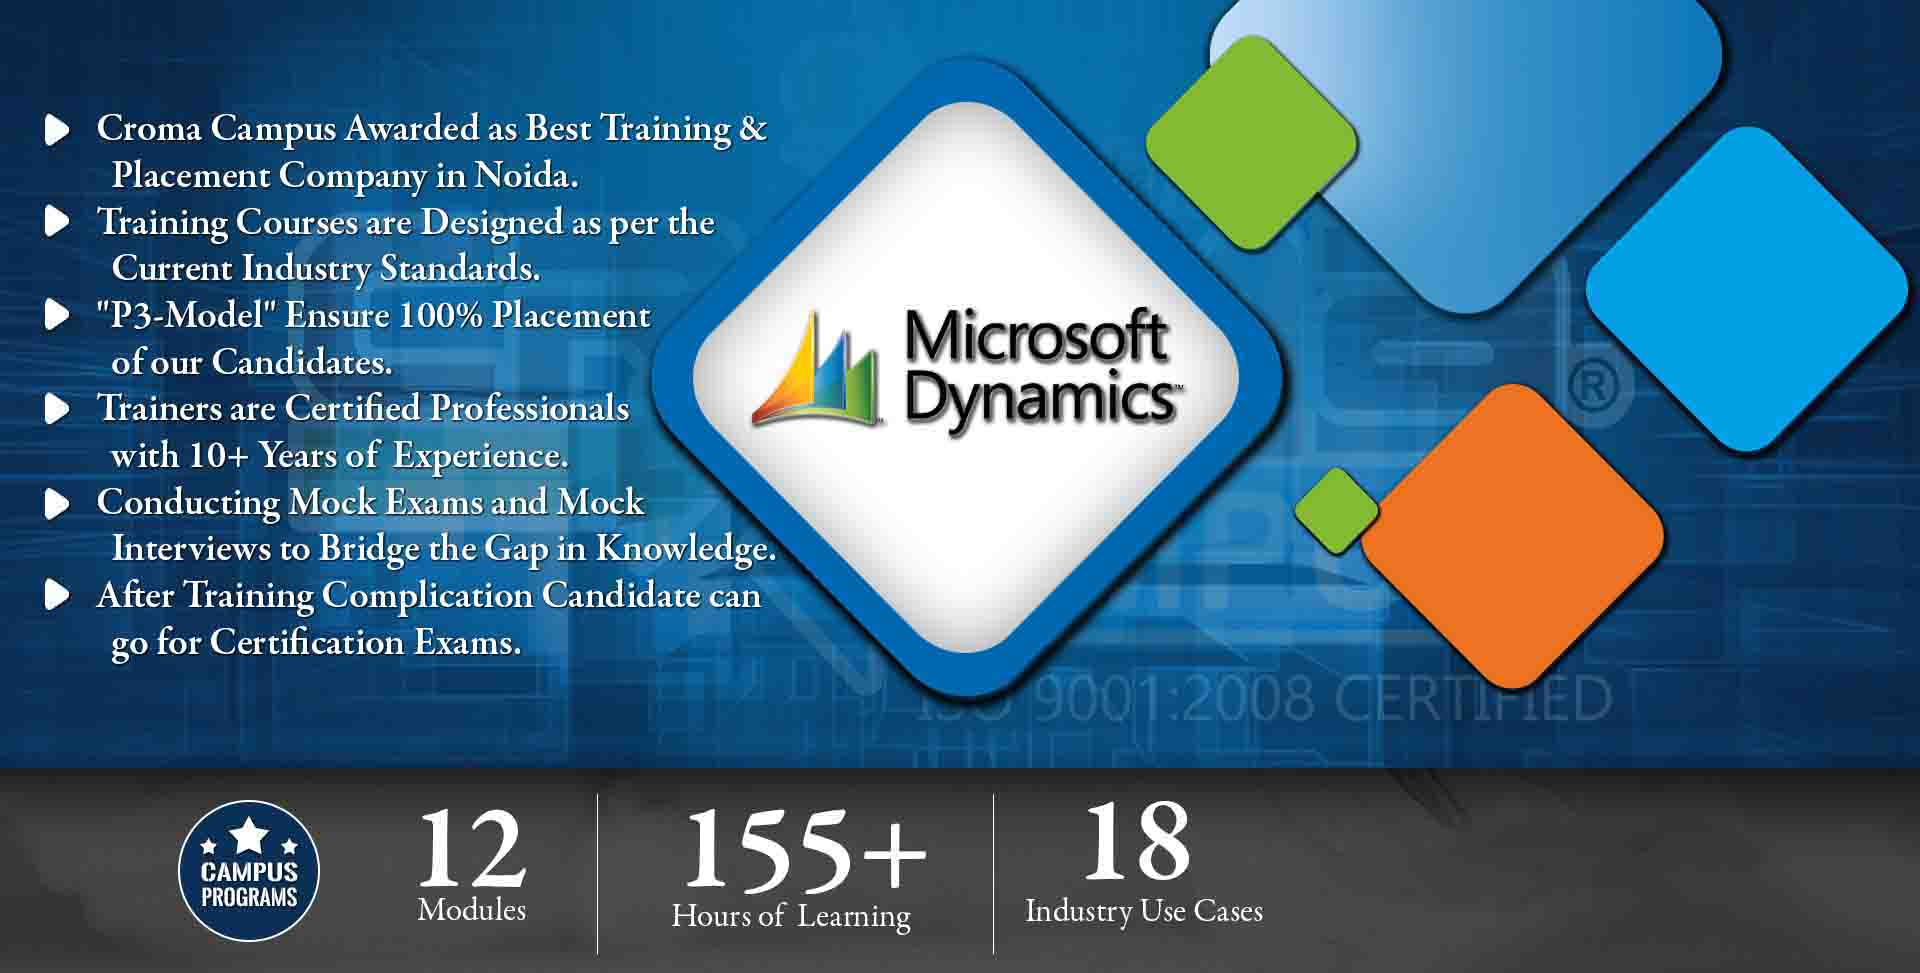 Microsoft Dynamics Training in Noida- Croma Campus